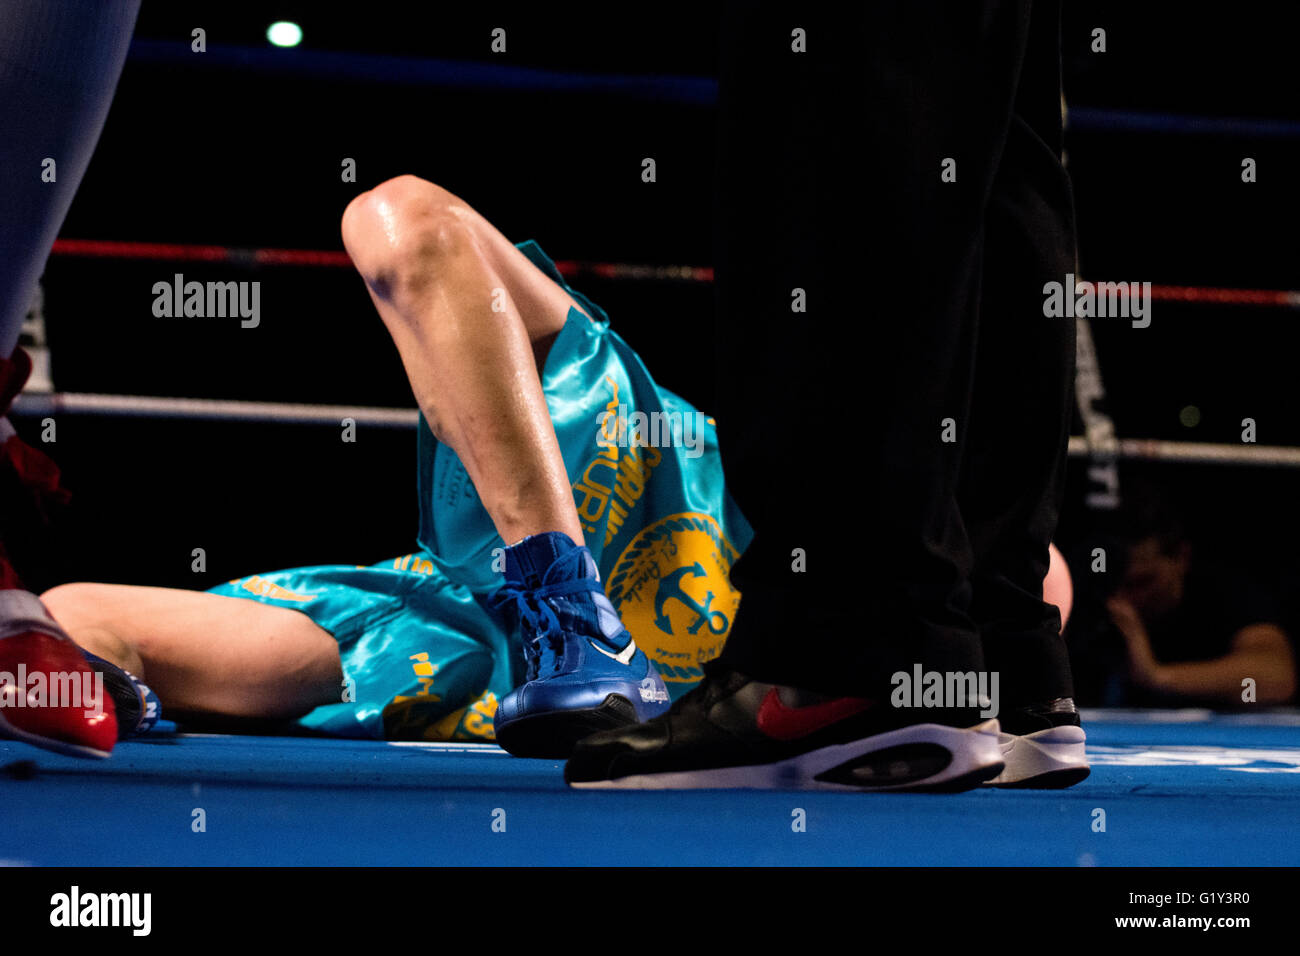 Gijon, Spain. 21st May, 2016. Juancho Gonzalez falls during the boxing match against Marc Vidal  of Spanish national - Stock Image